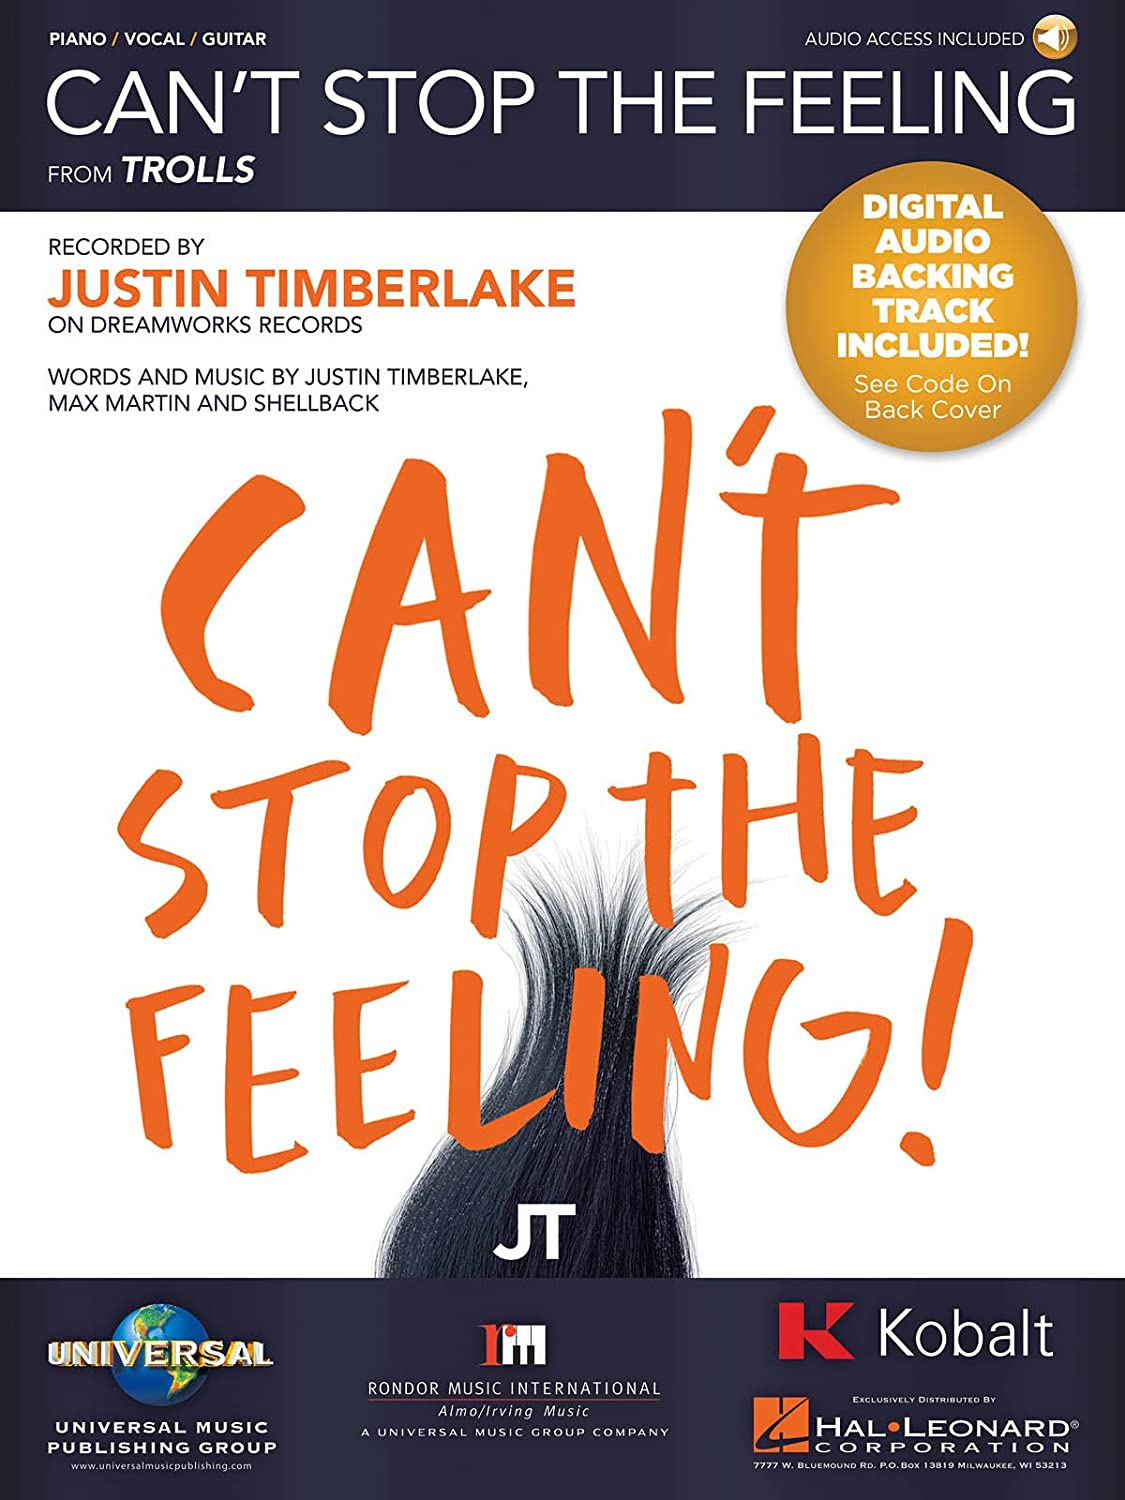 Amazon Justin Timberlake Cant Stop The Feeling Pianovocal